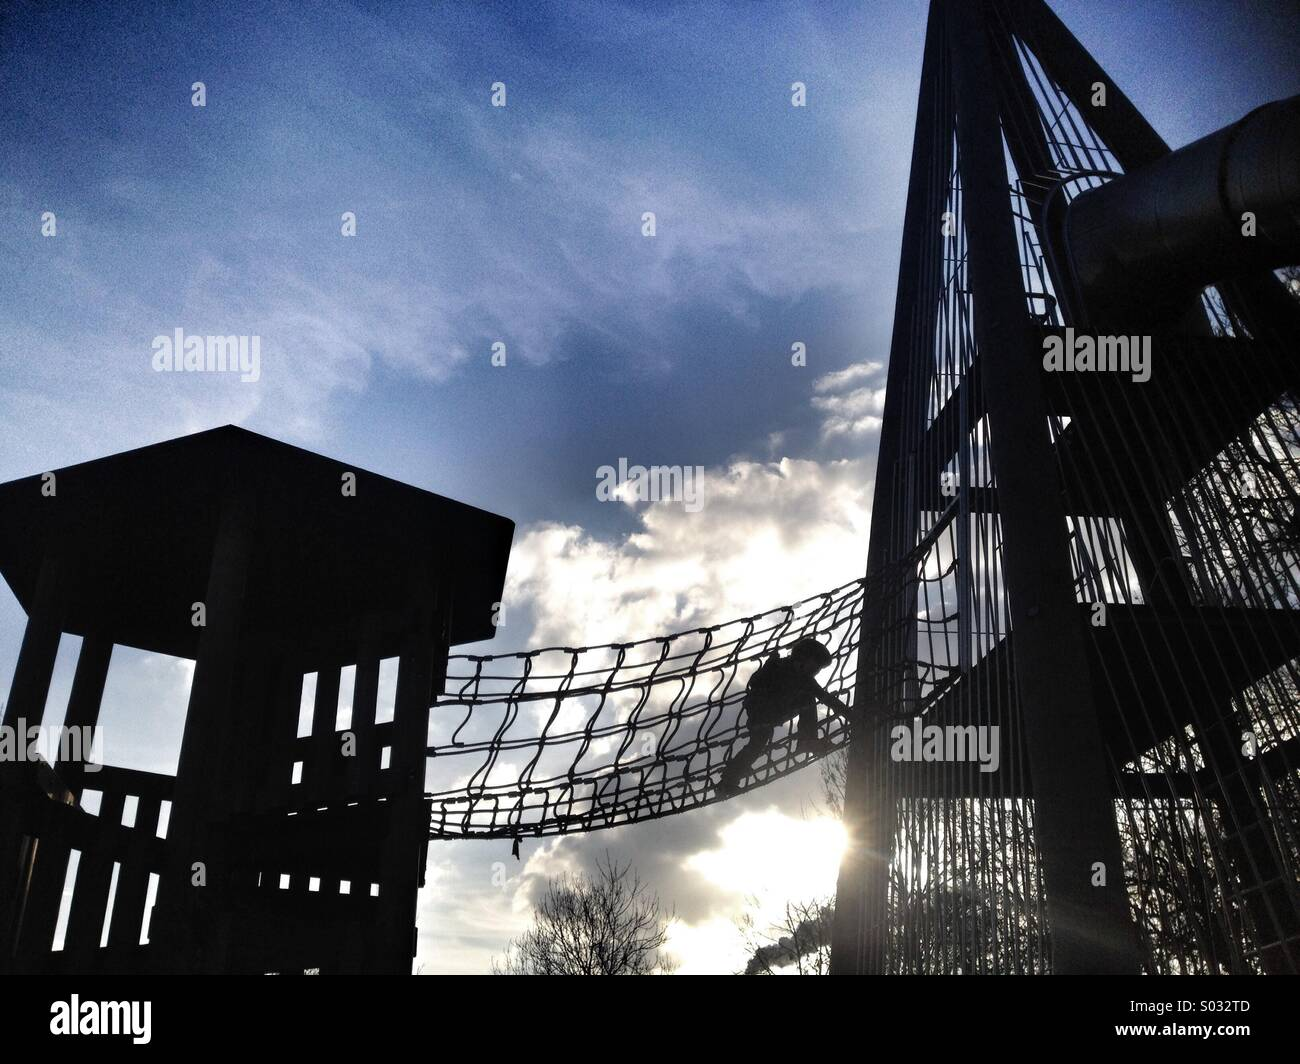 A young boy climbs between two structures in a play park. - Stock Image